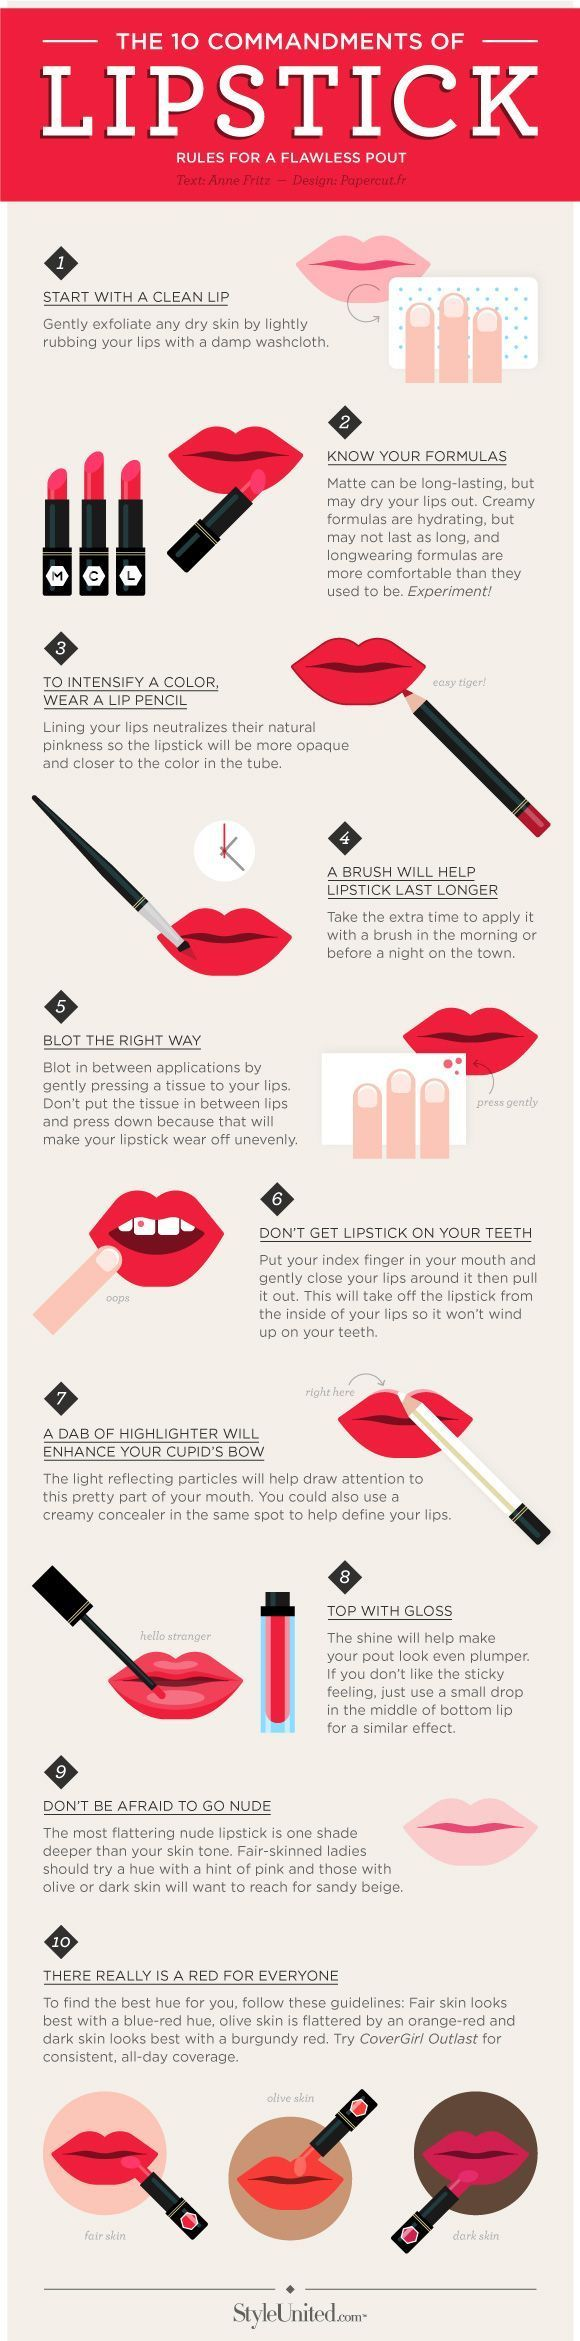 10 Clever Lipstick Tips For A Flawless Pout | DIY Lipstick Hacks by Makeup Tutor...